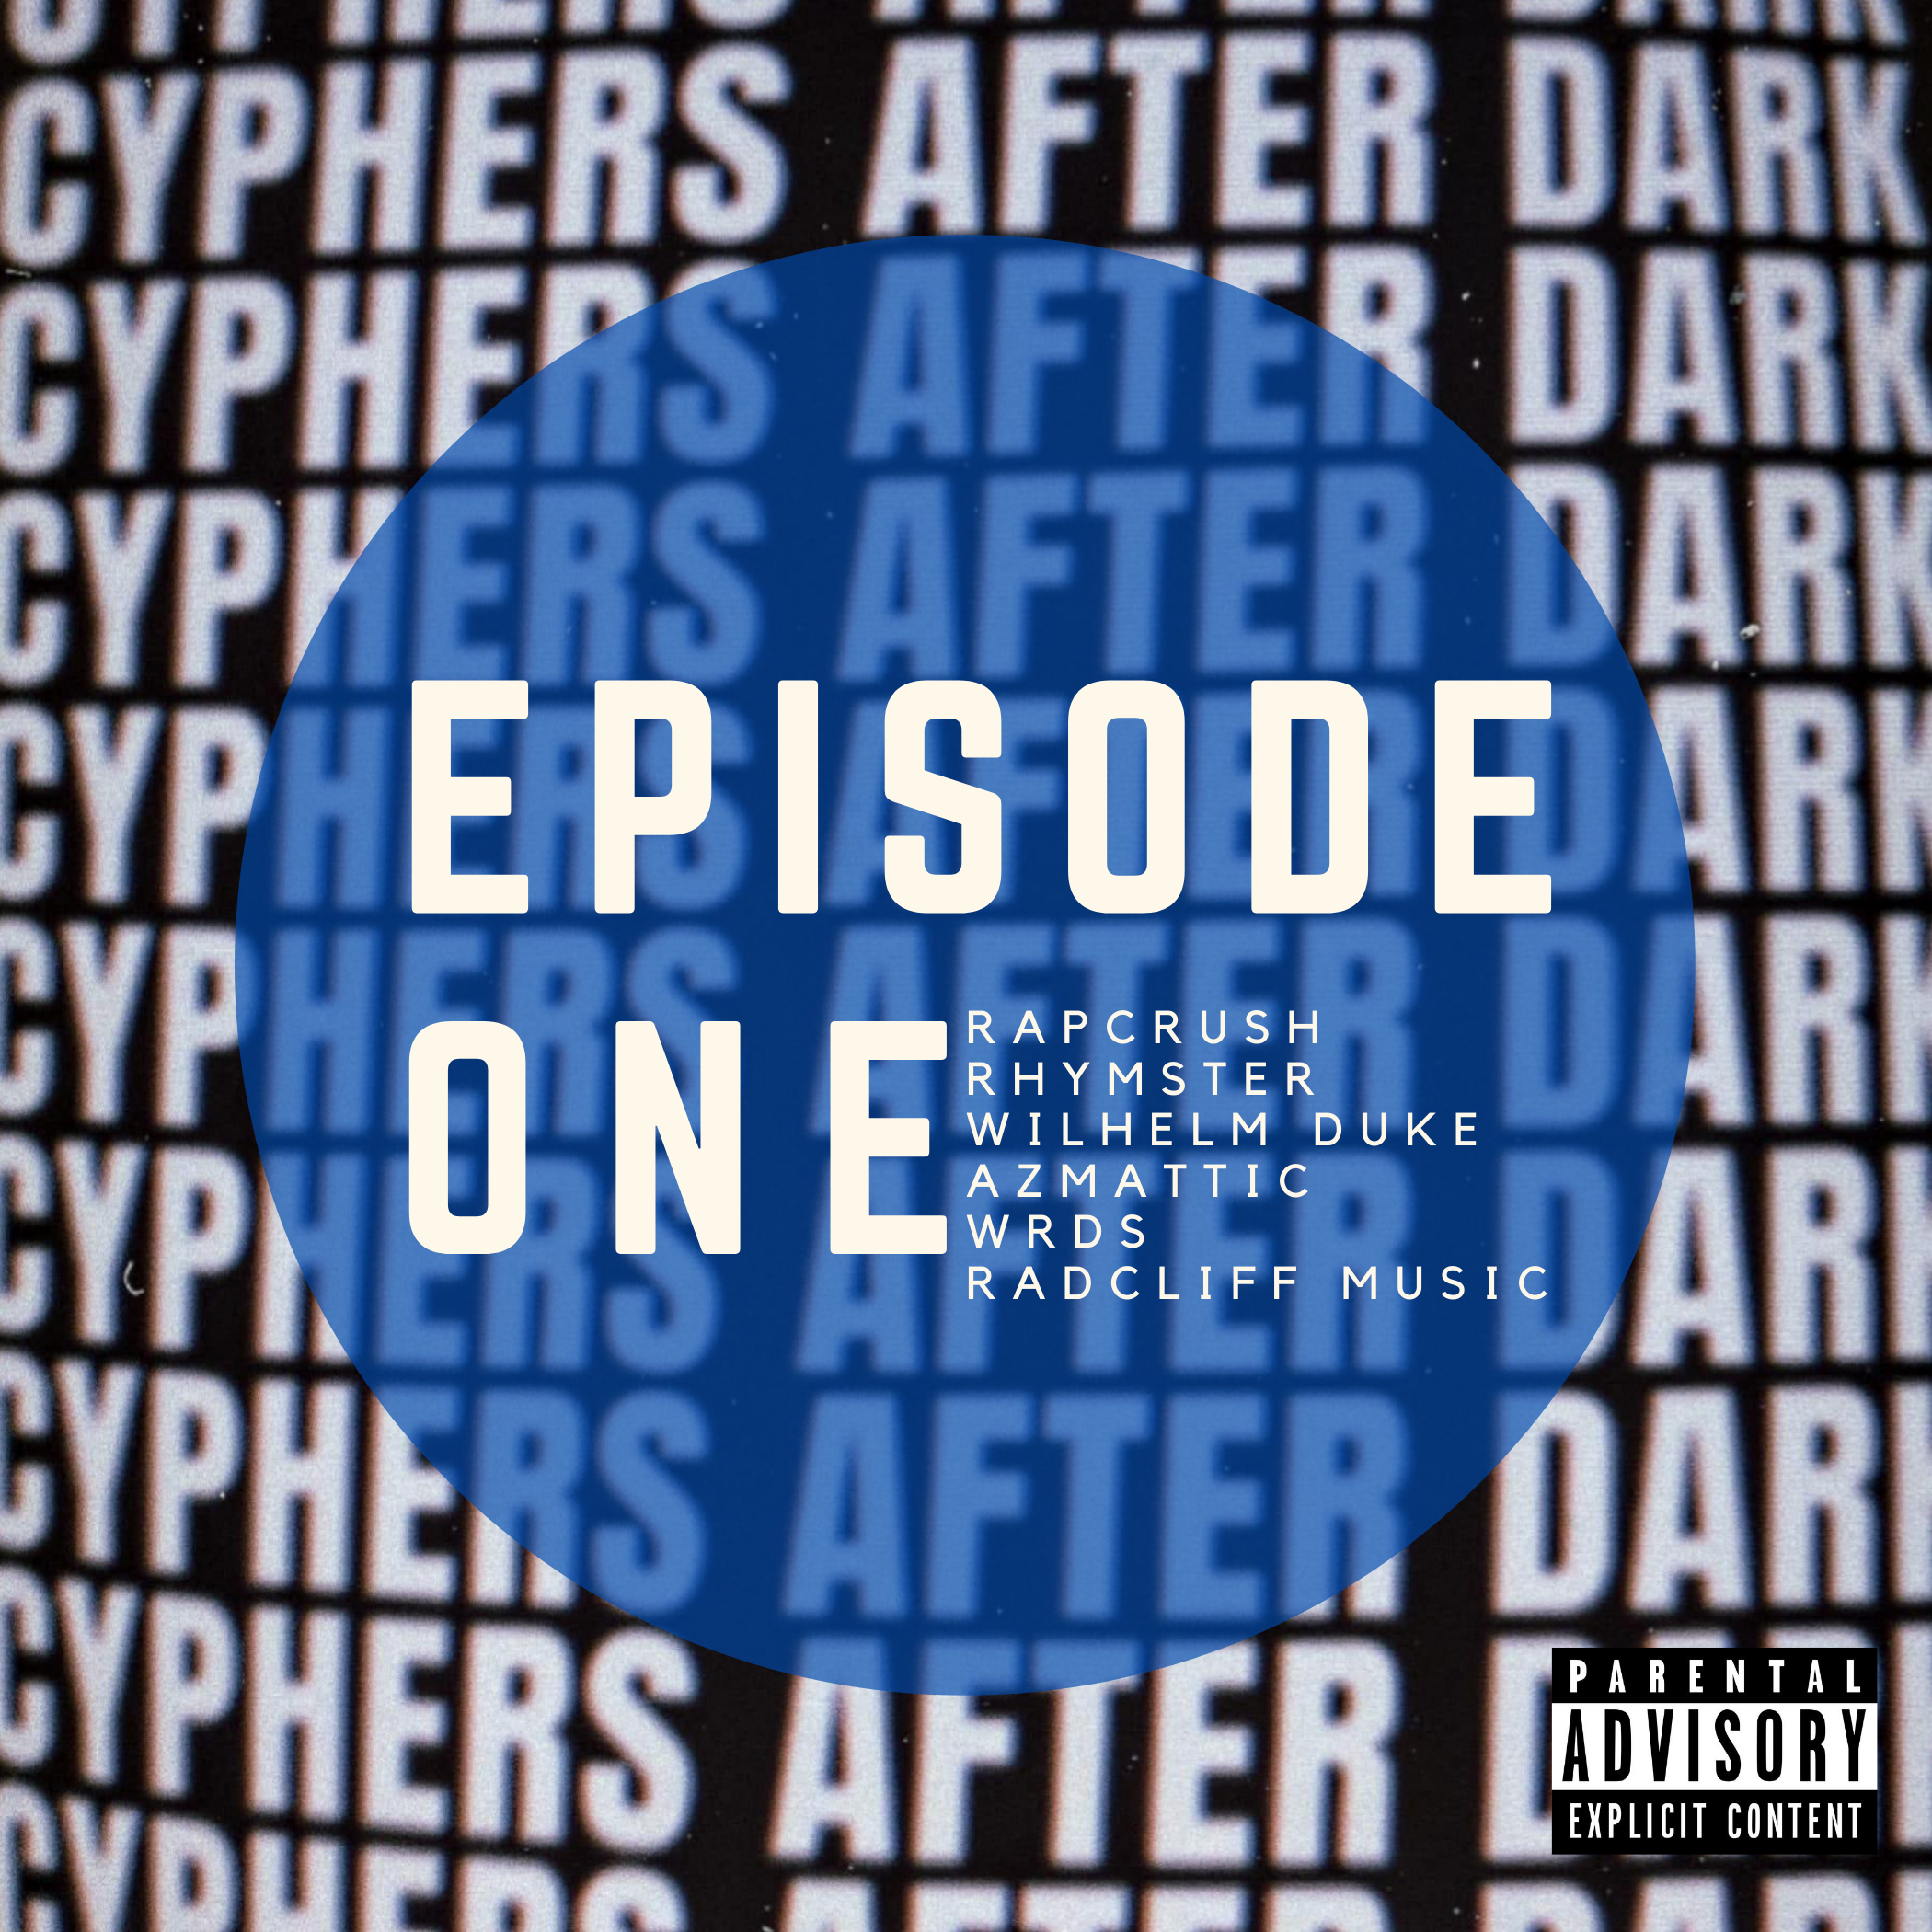 Cyphers After Dark